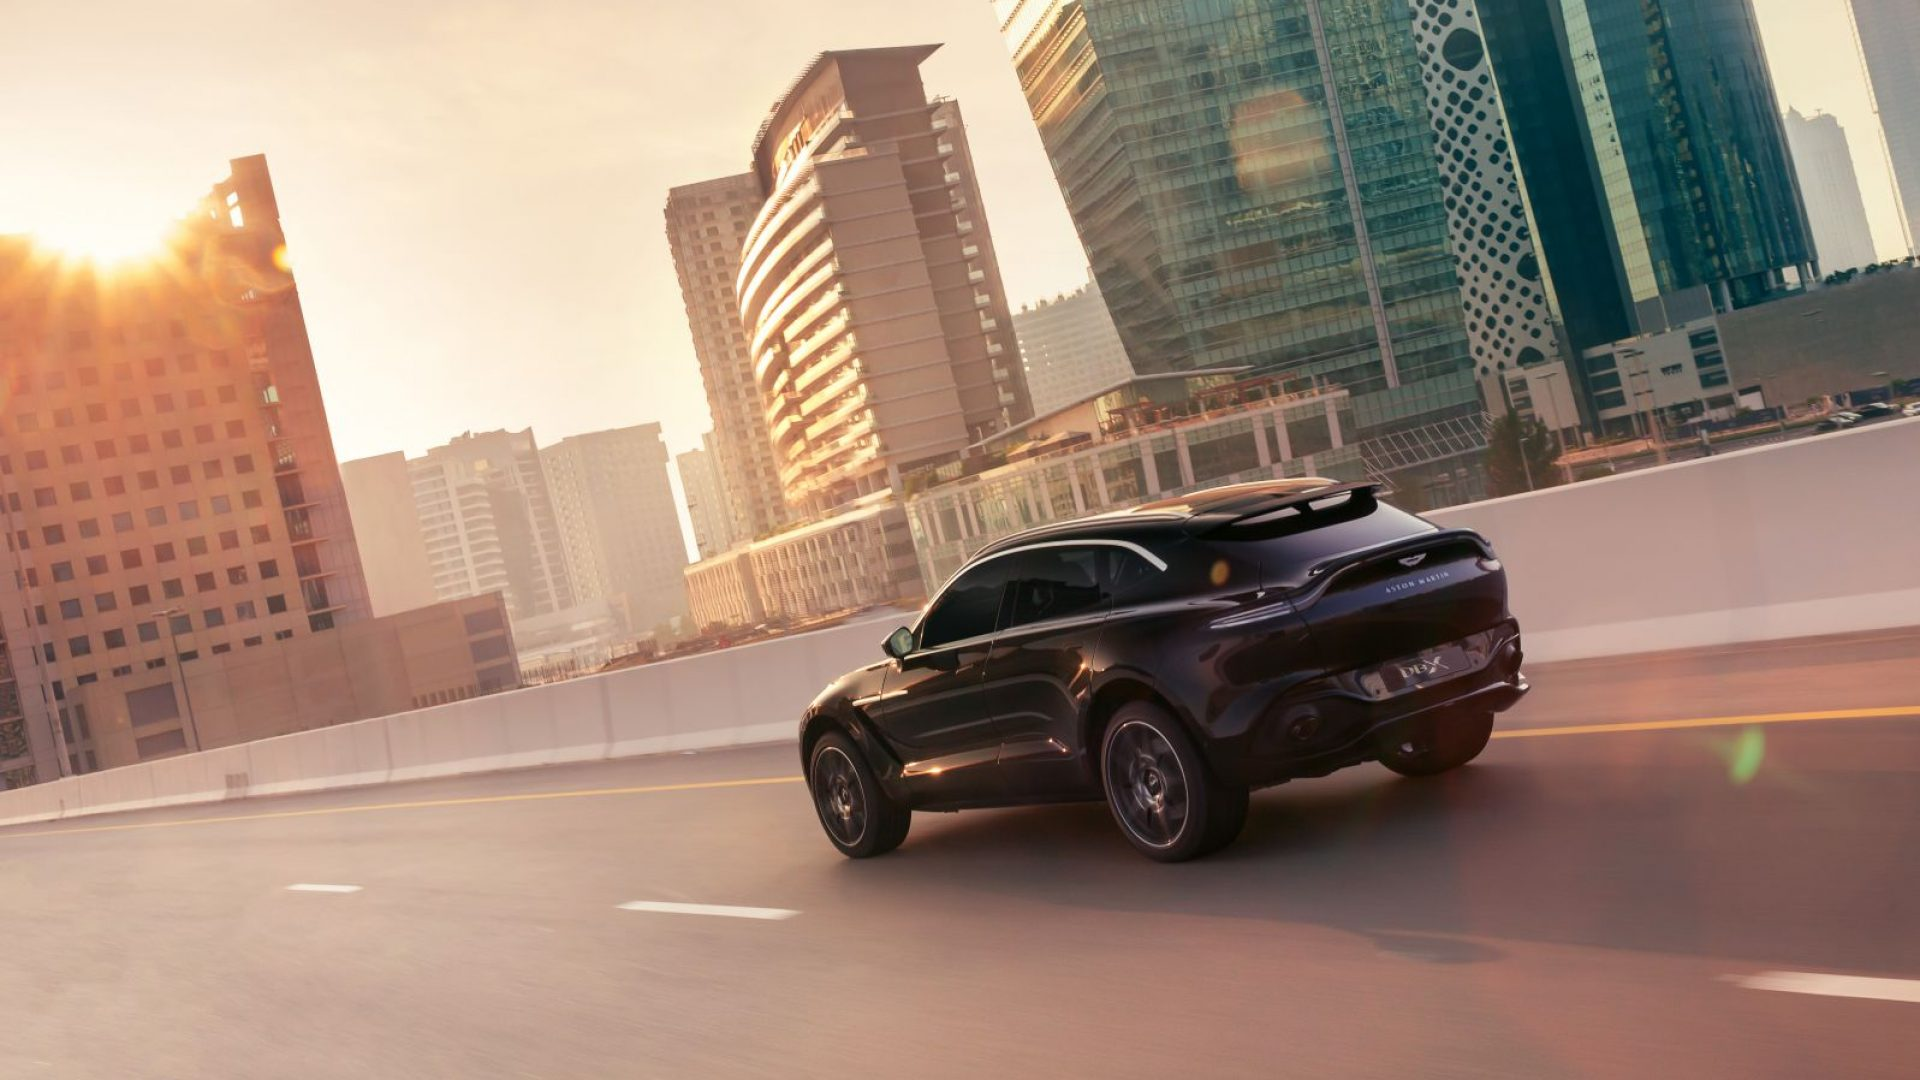 aston-martin-dbx-in-the-middle-east-5-jpg.